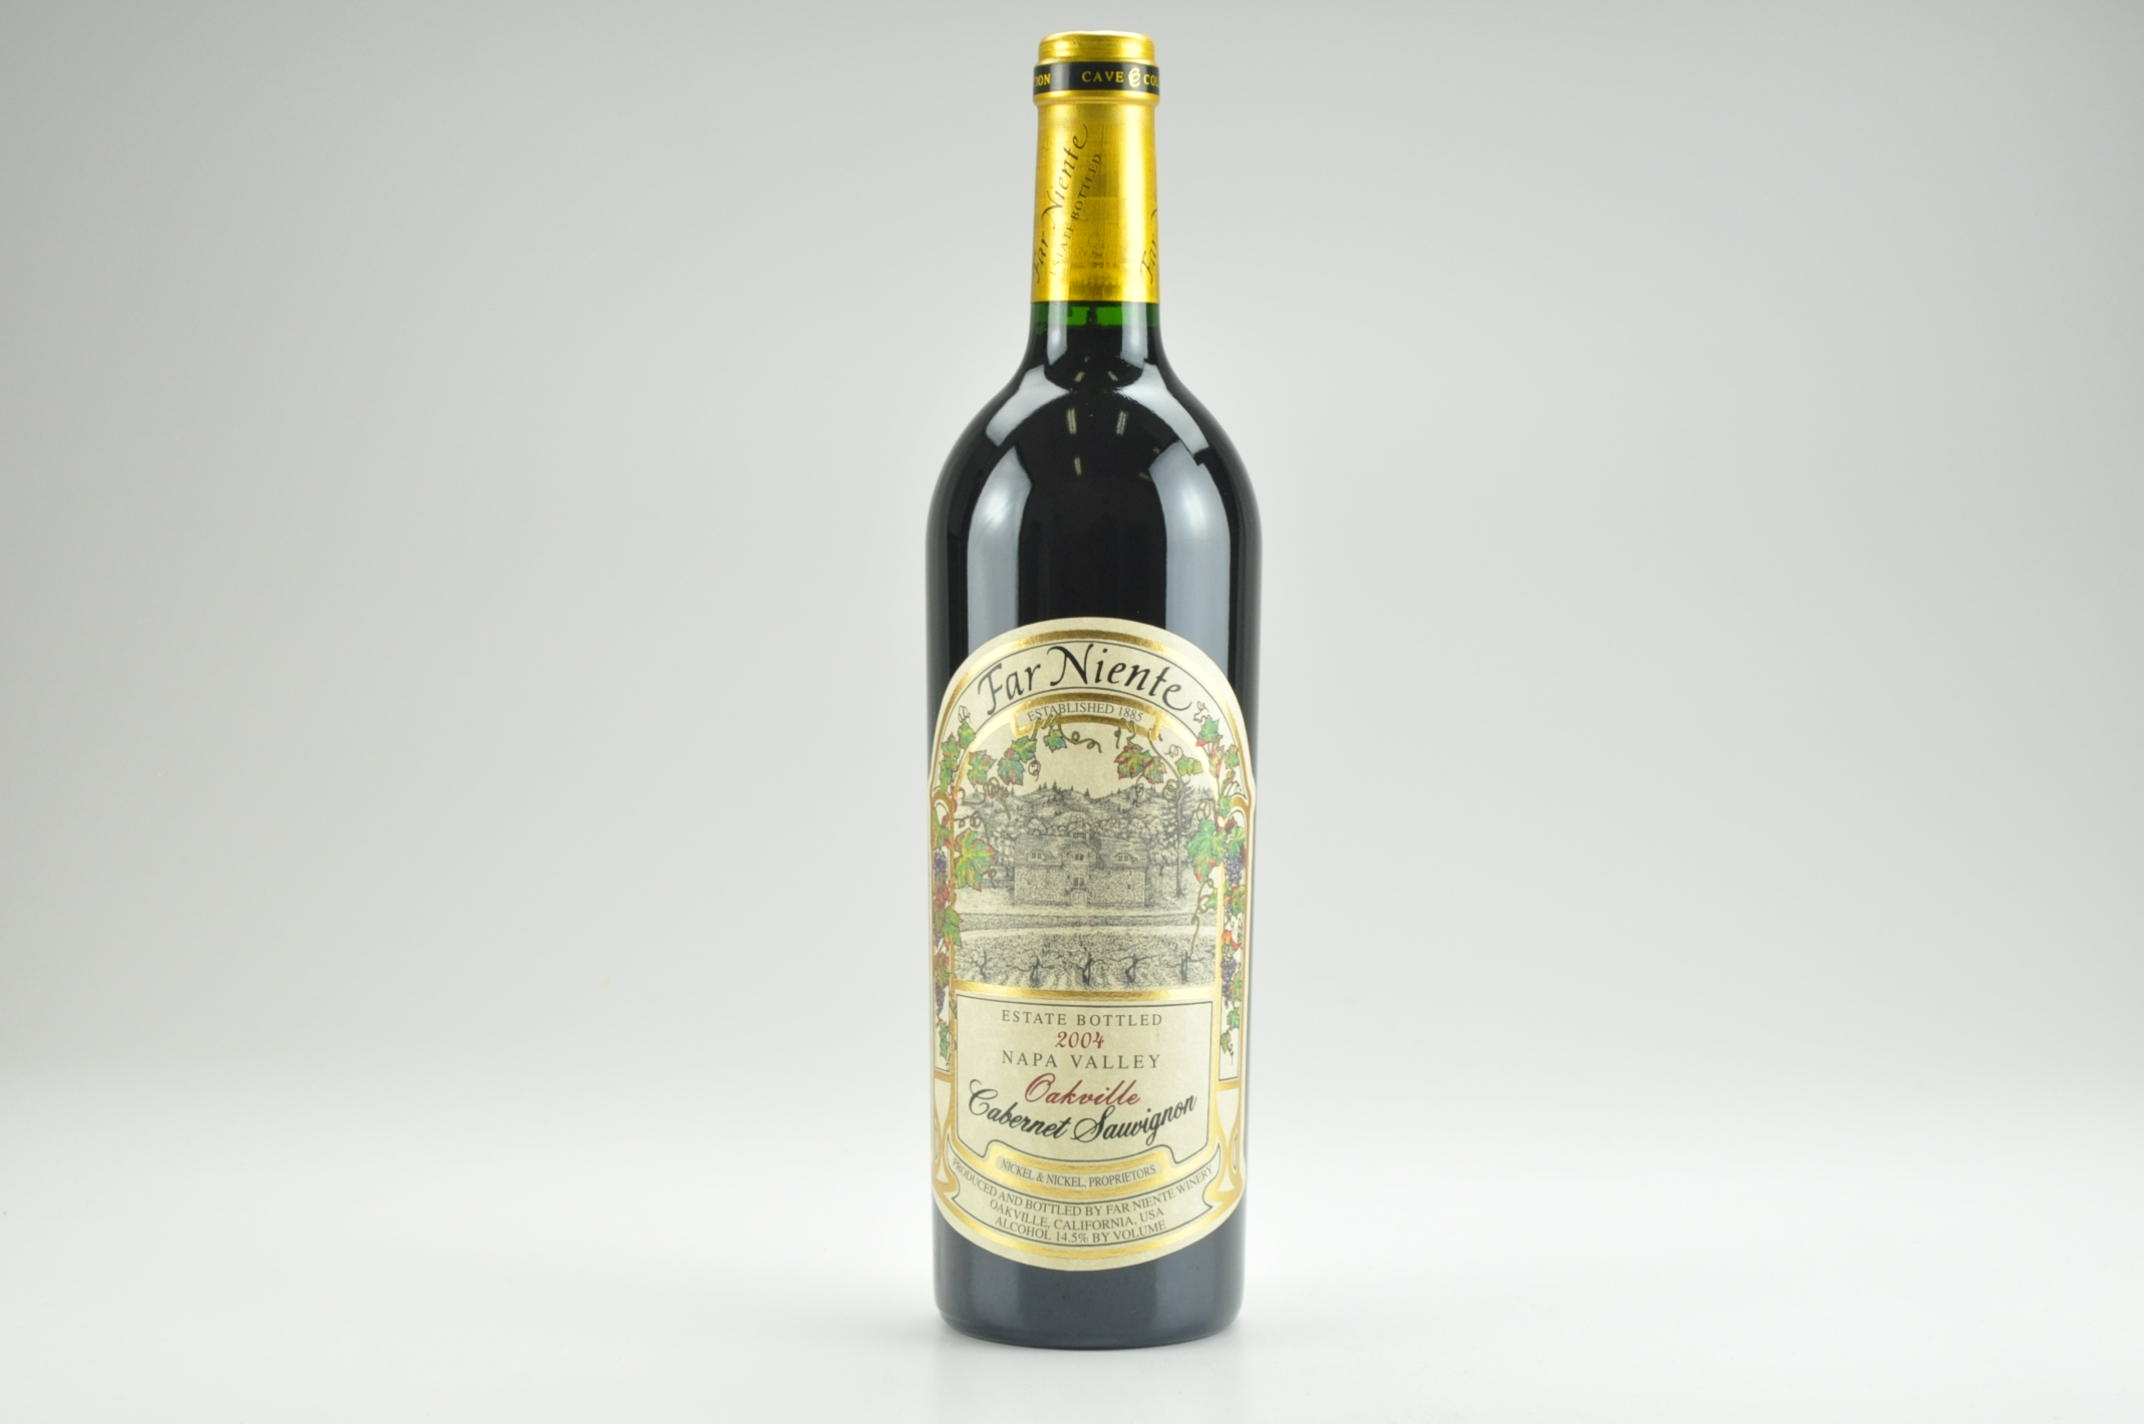 2006 Far Niente Cabernet Sauvignon Cave Collection, Oakville